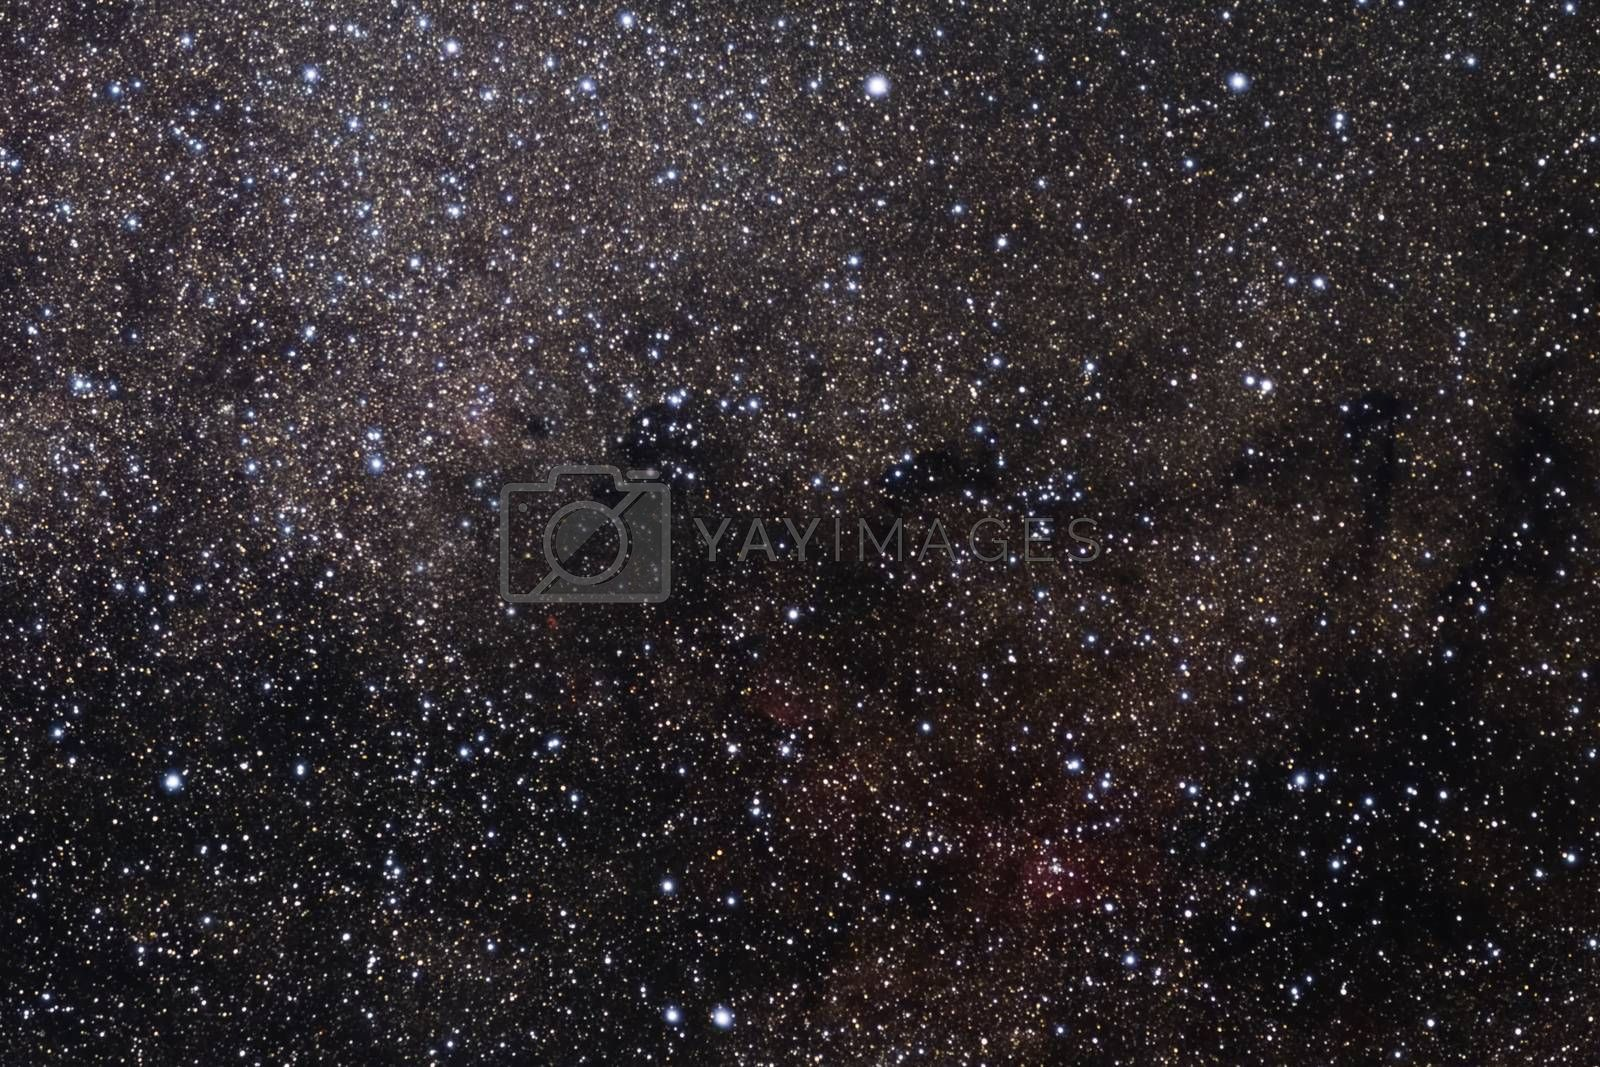 The star sky a background texture, galaxies in the night sky. Graphics image of the star sky by Nirkov